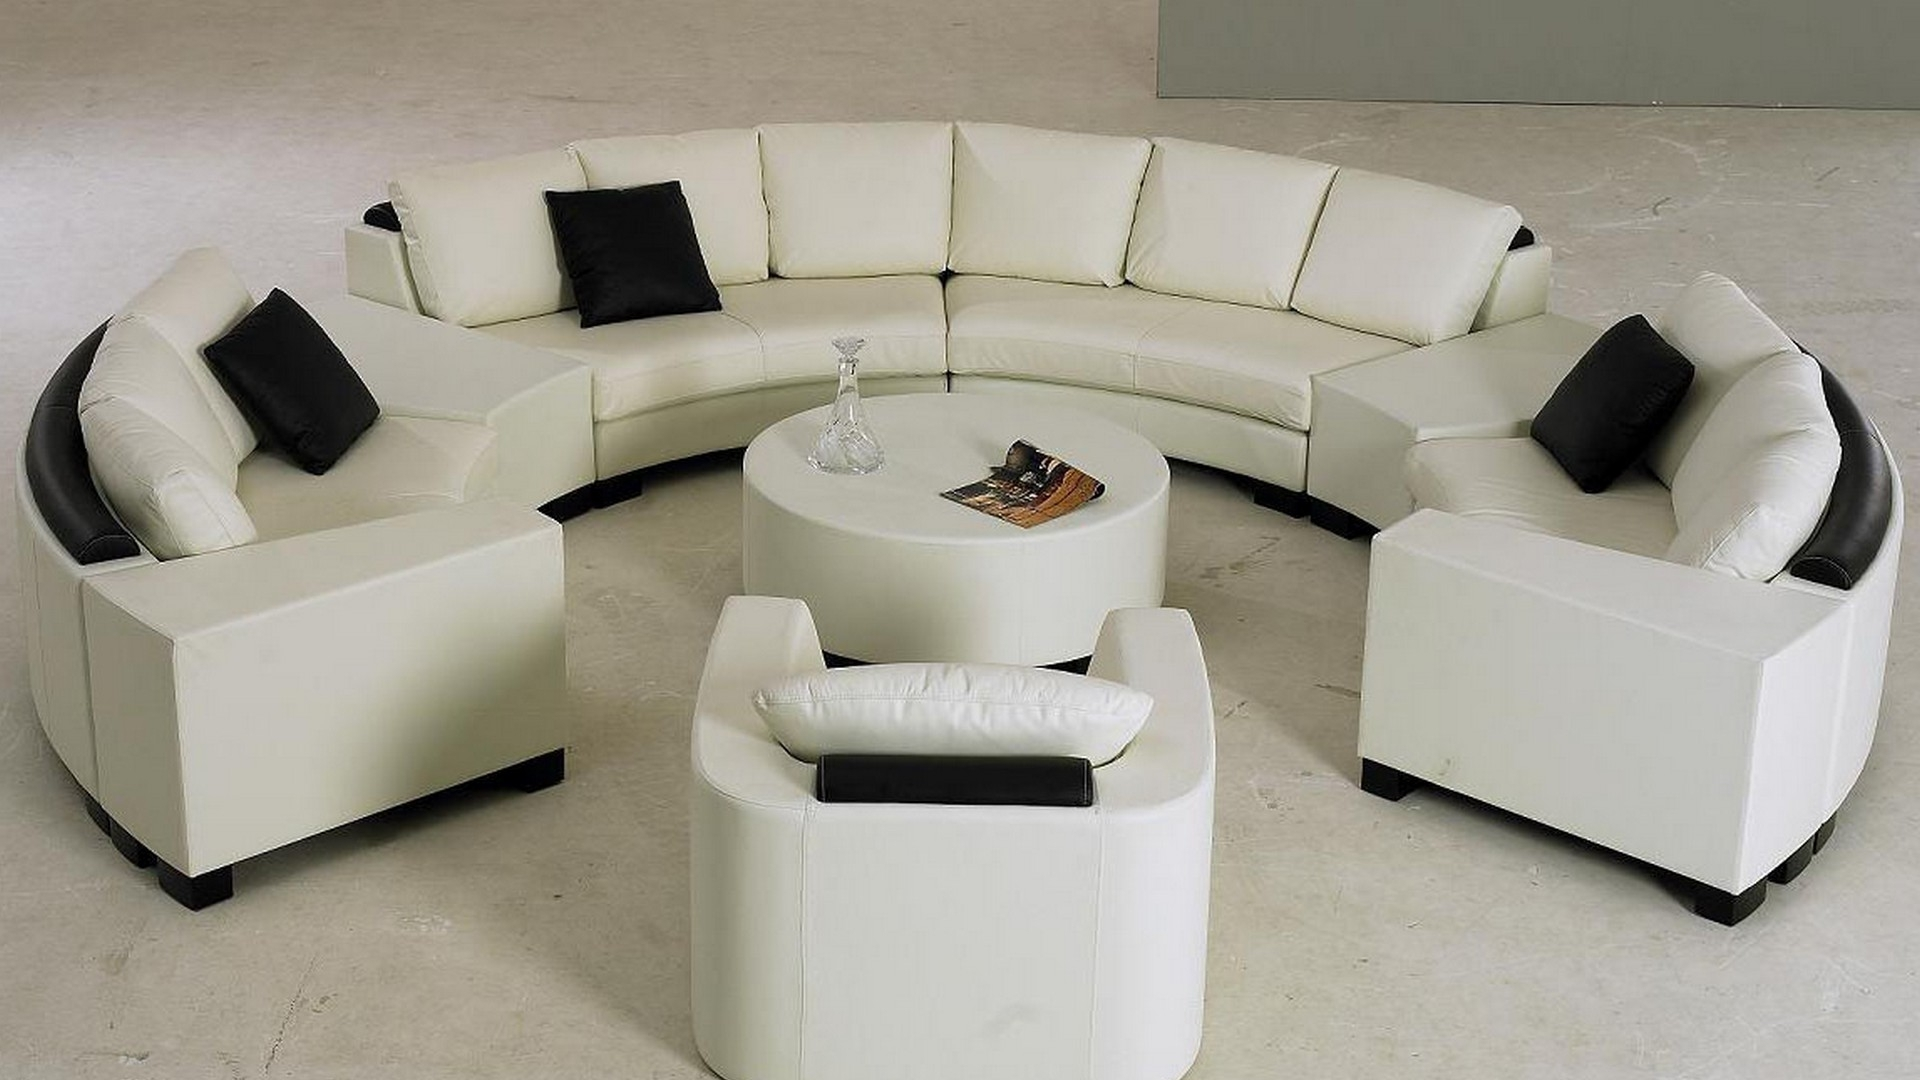 Engagng White Half Round Sofa With Black Pillows And Rond Table With Widely Used Round Sofas (View 3 of 15)